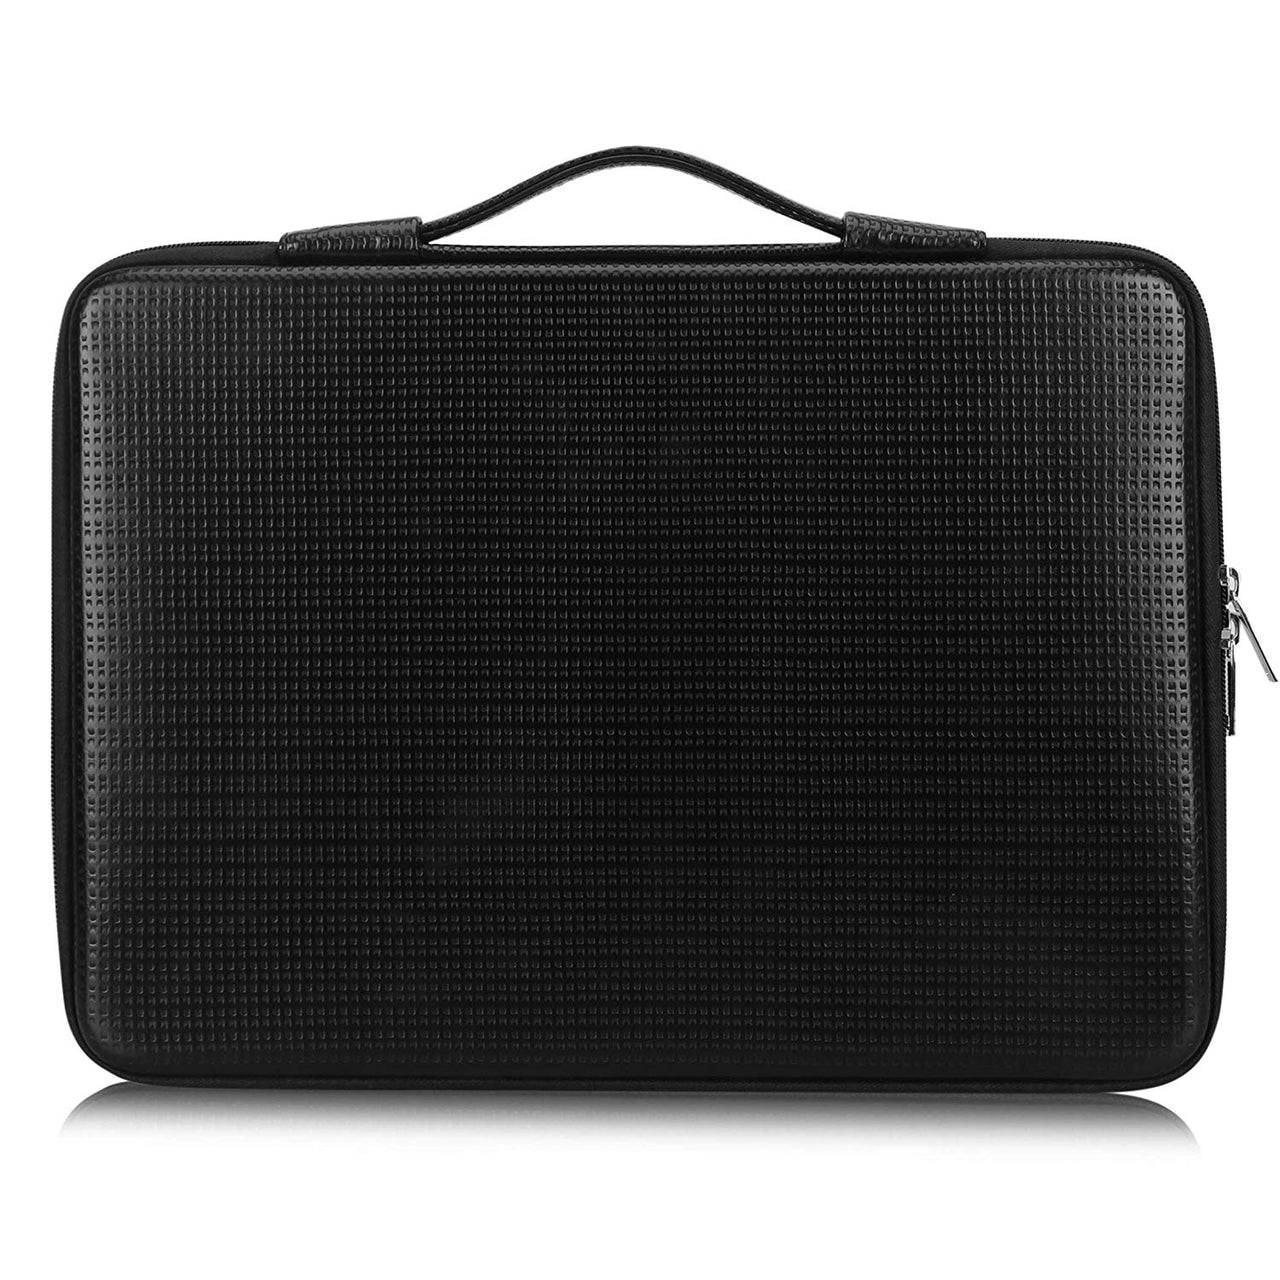 "FYY 12""-13.3"" Laptop Sleeve Waterproof Briefcase Handbag Case with Inner Tuck net fits All 12-13.3 inches Laptop, Notebook, MacBook Air/Pro, Tablet, iPad"